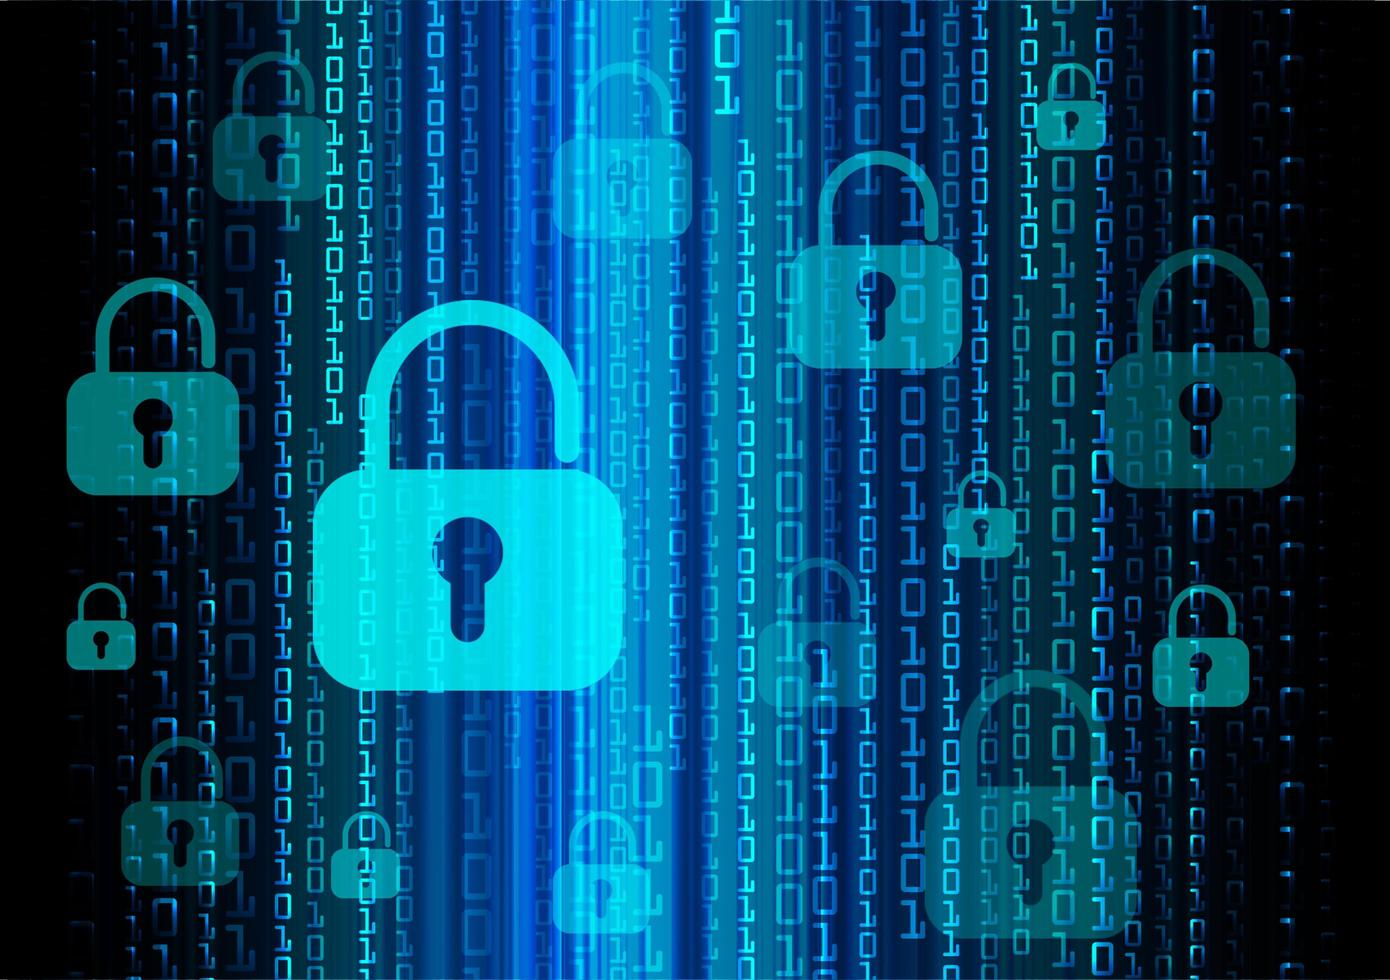 Closed Padlock on digital background, cyber security photo